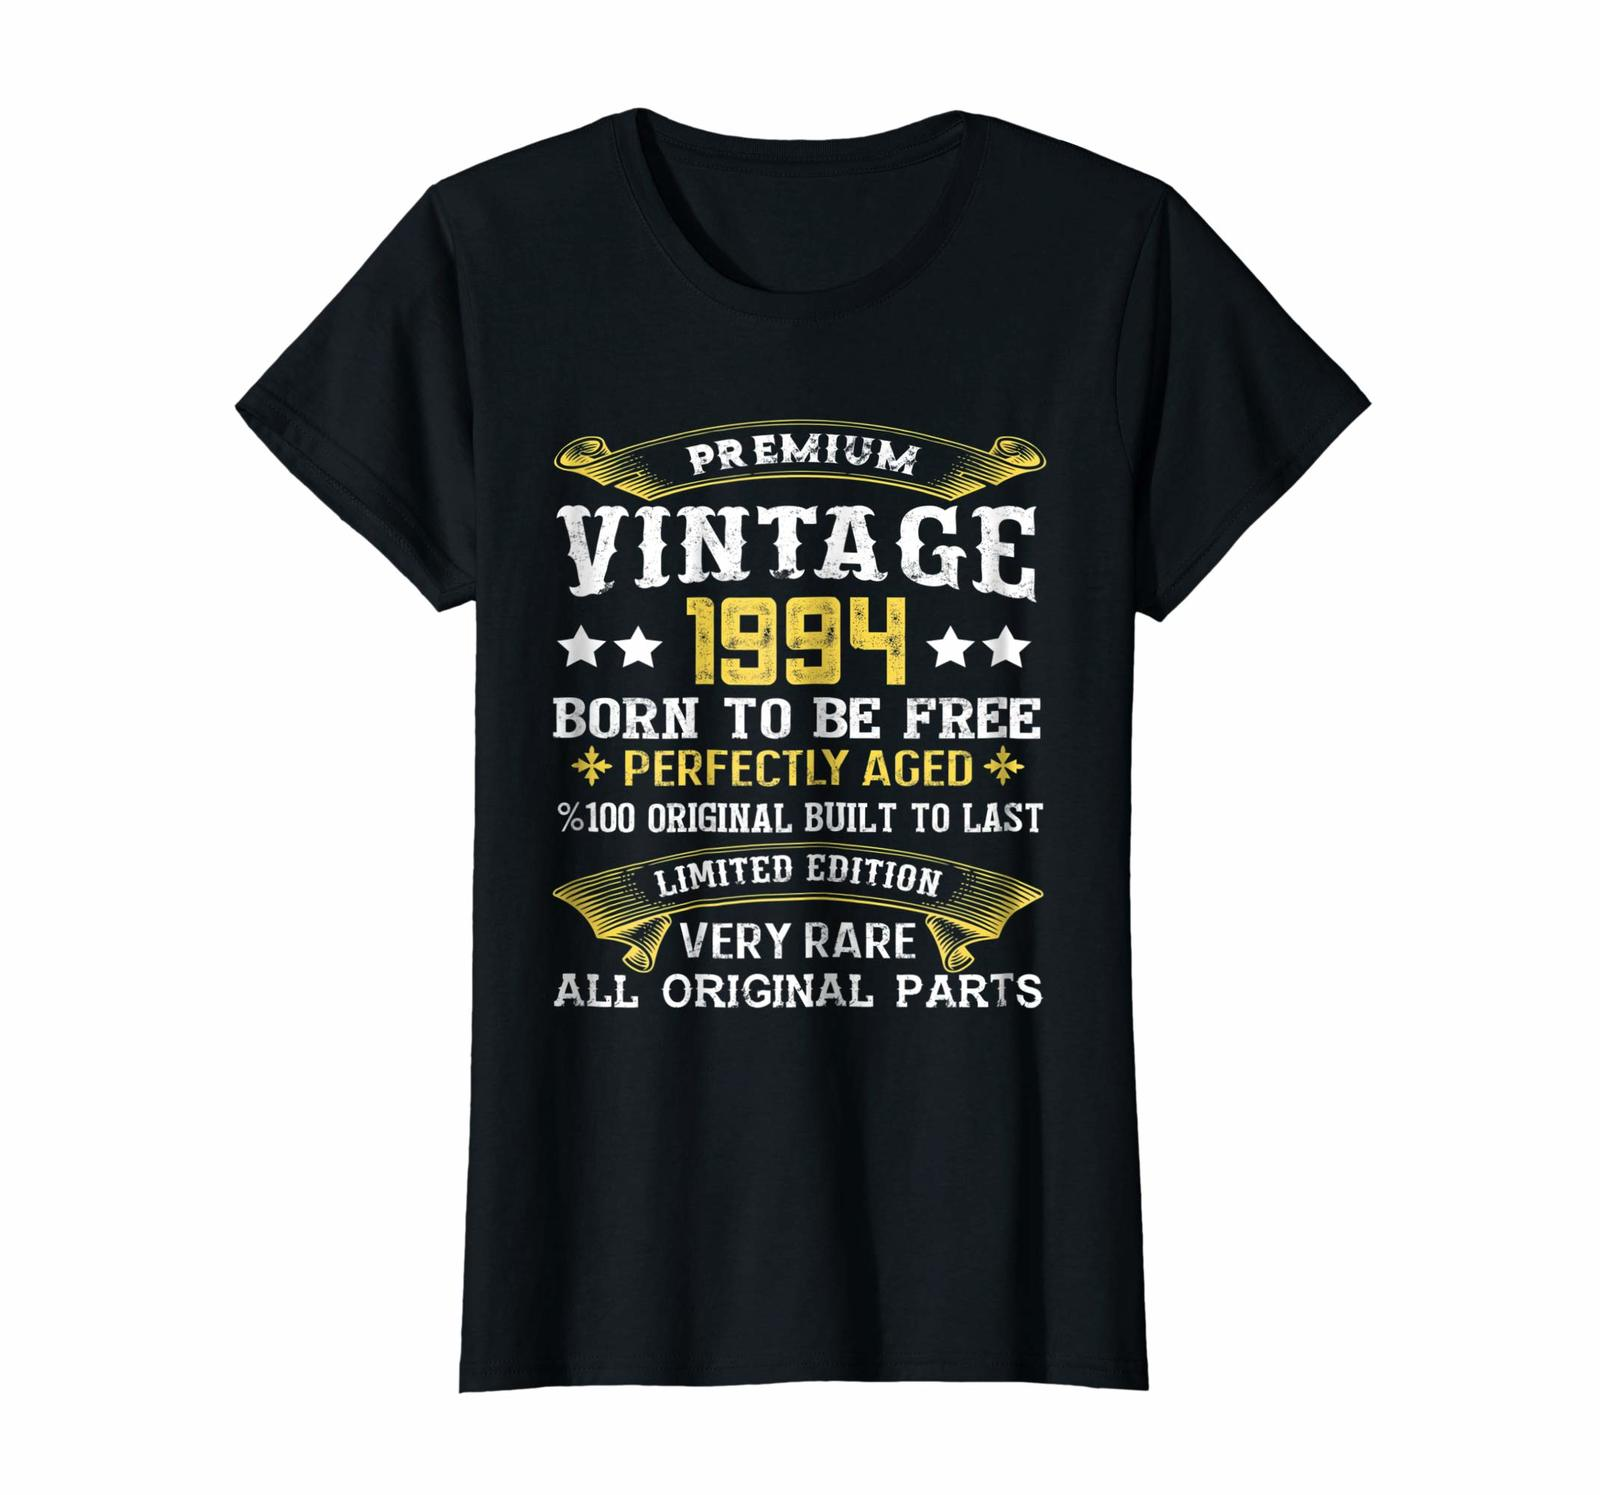 Brother Shirts - Vintage Perfectly Aged 1994 24th Years Old Birthday Shirt Wowen image 2